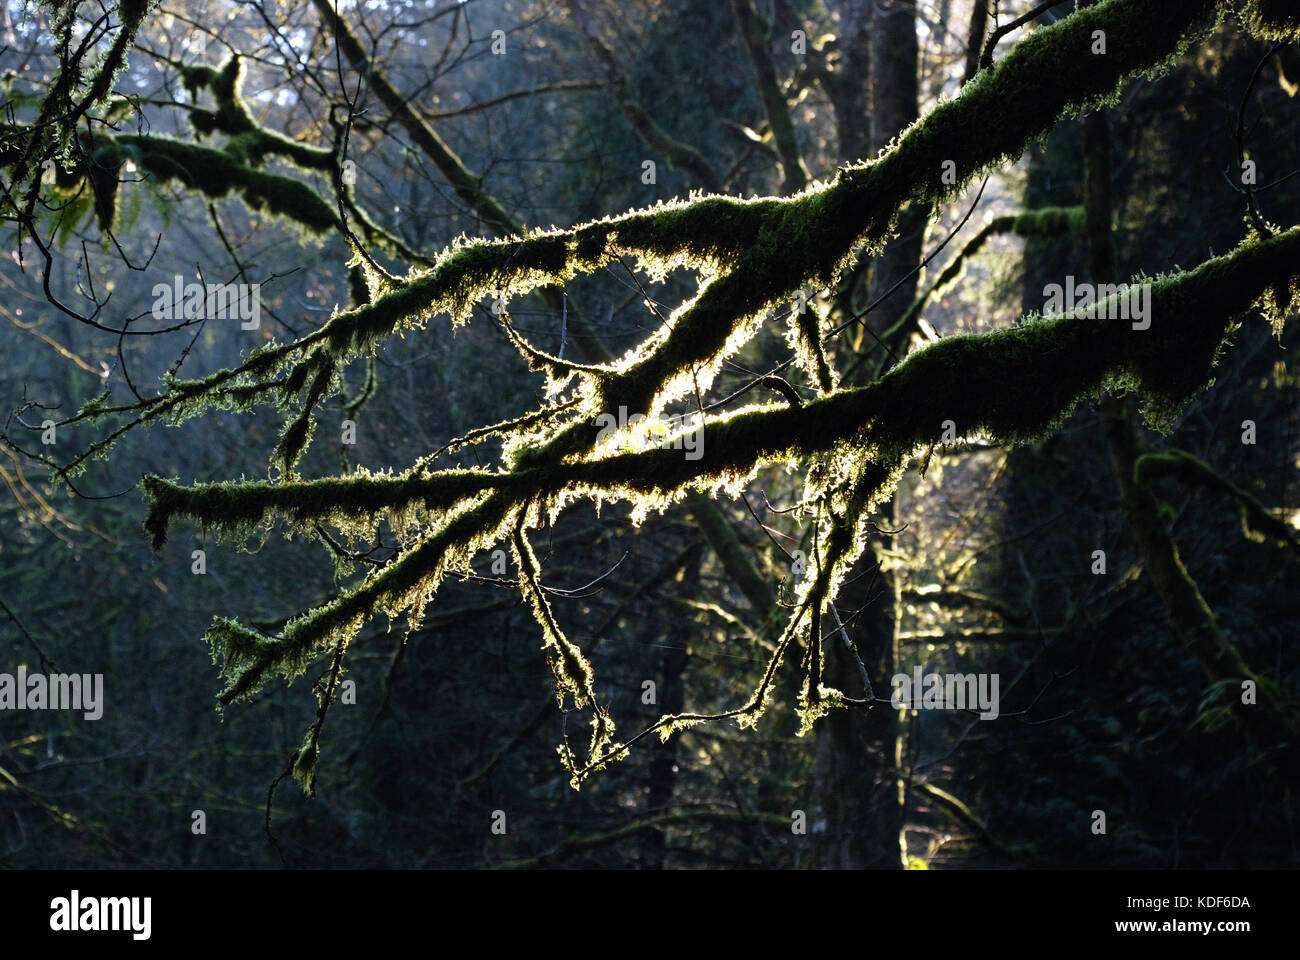 Sunlight filters through moss at Goldstream Park, near Victoria BC in Canada - Stock Image